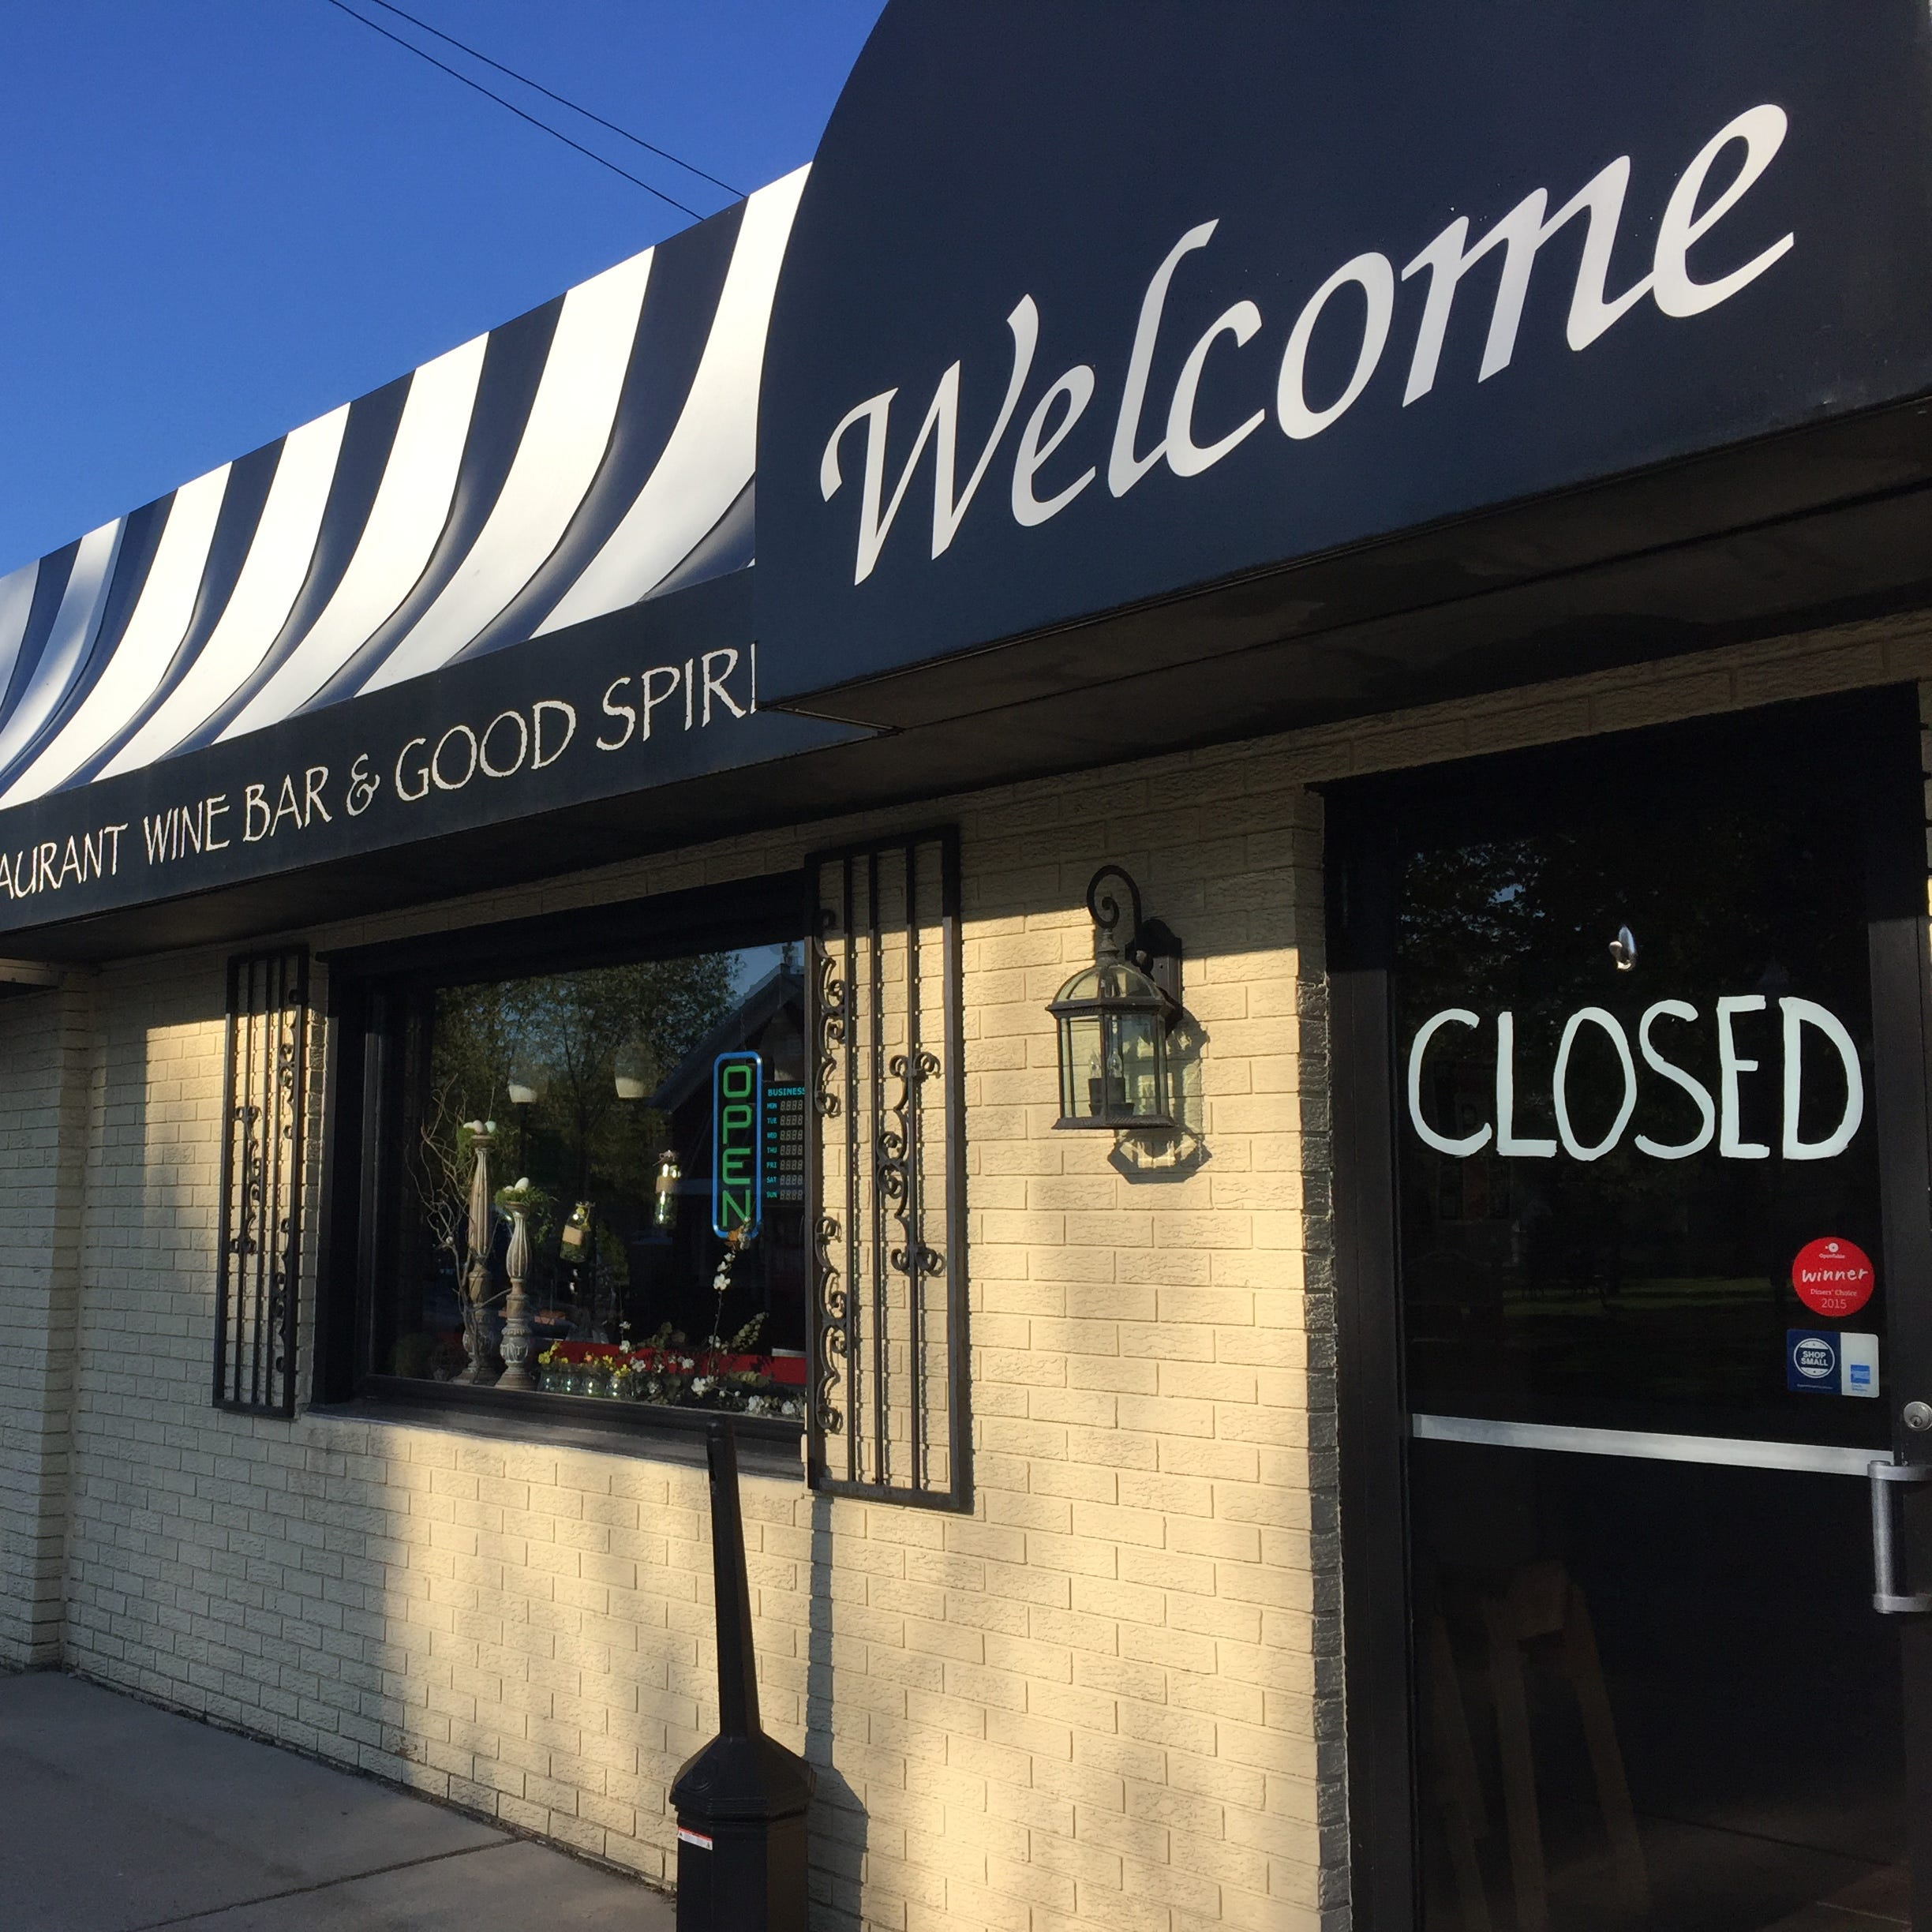 Popular downtown Pinckney restaurant closes, put up for sale